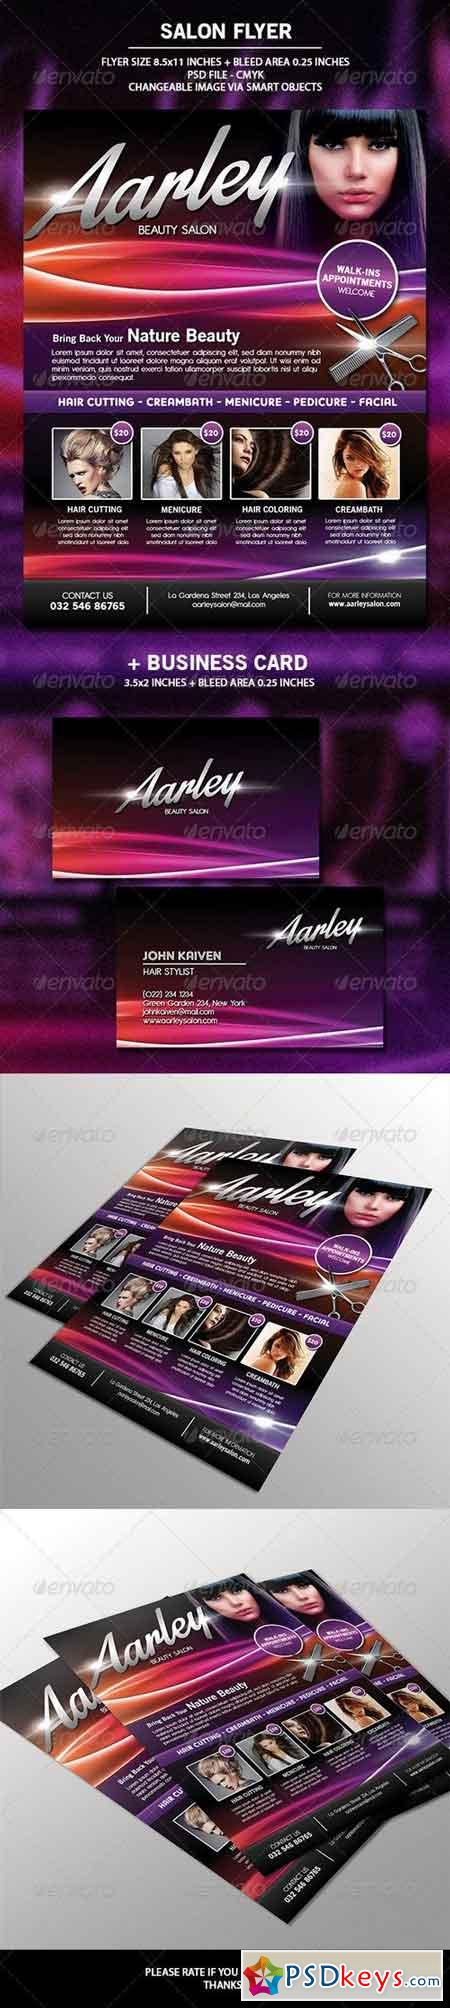 Salon Flyer + Business Card 6648679